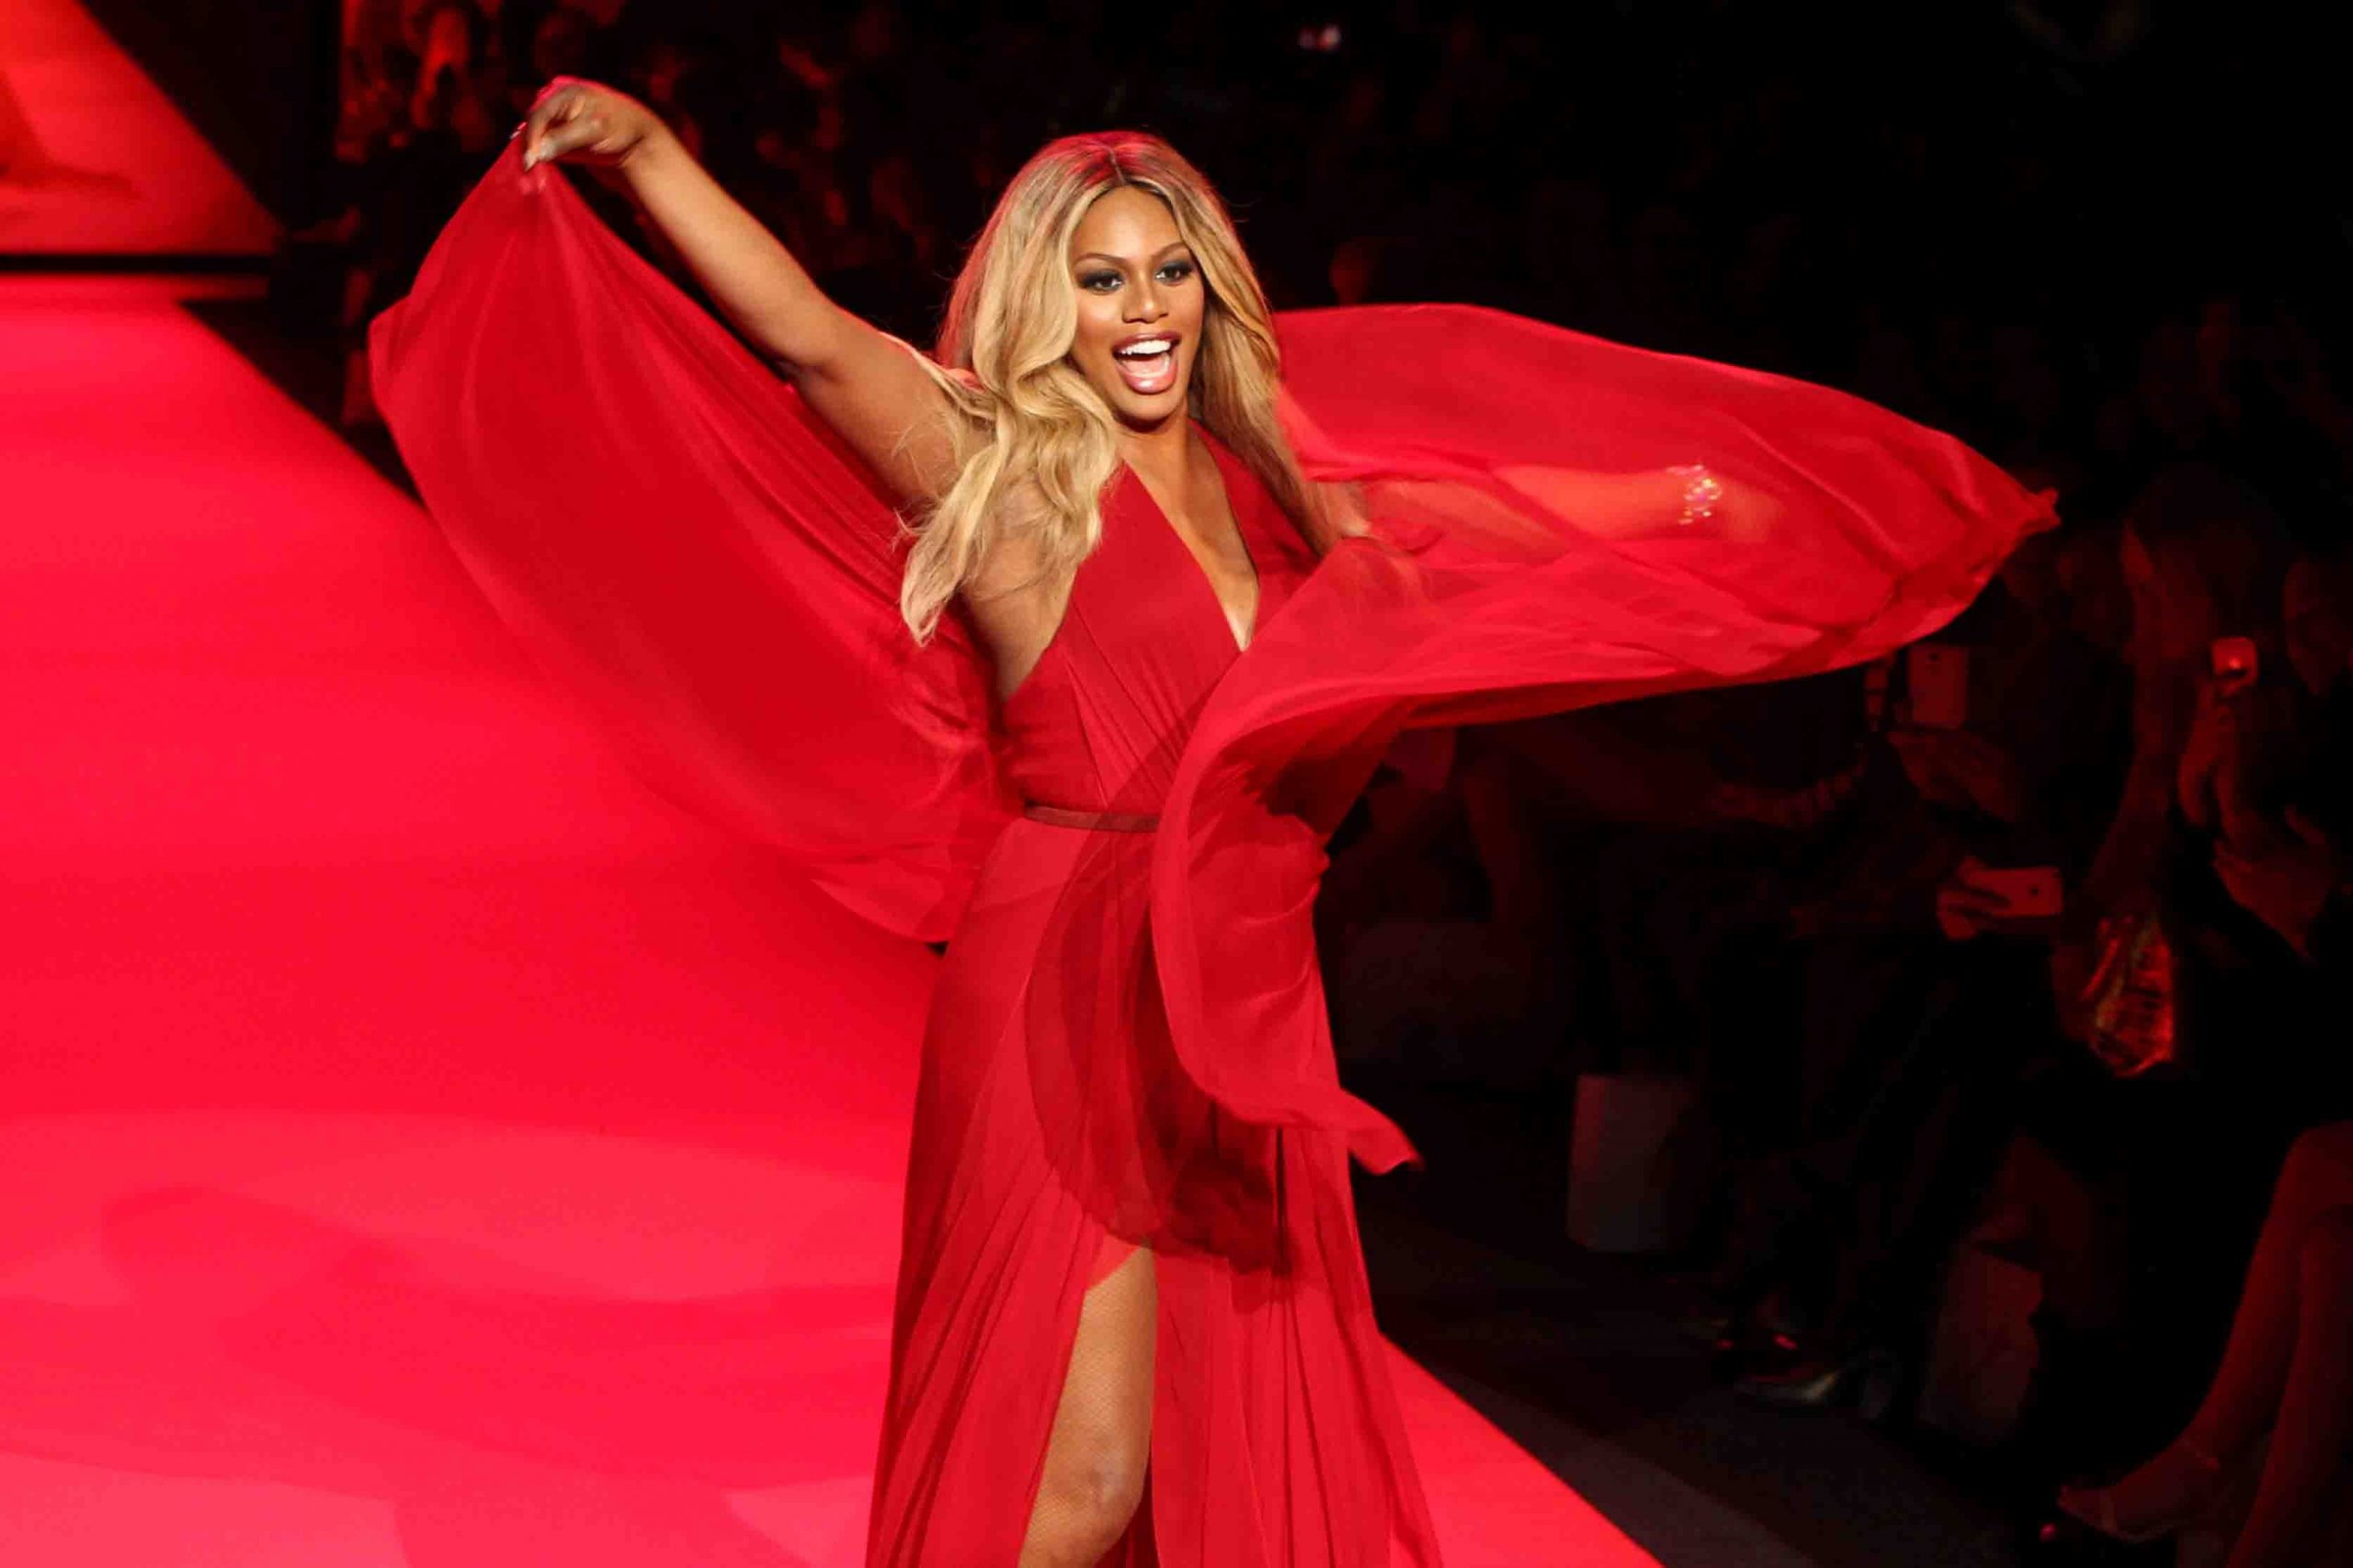 Trans actress Laverne Cox walks on the red carpet in a red gown that she is twirling in.